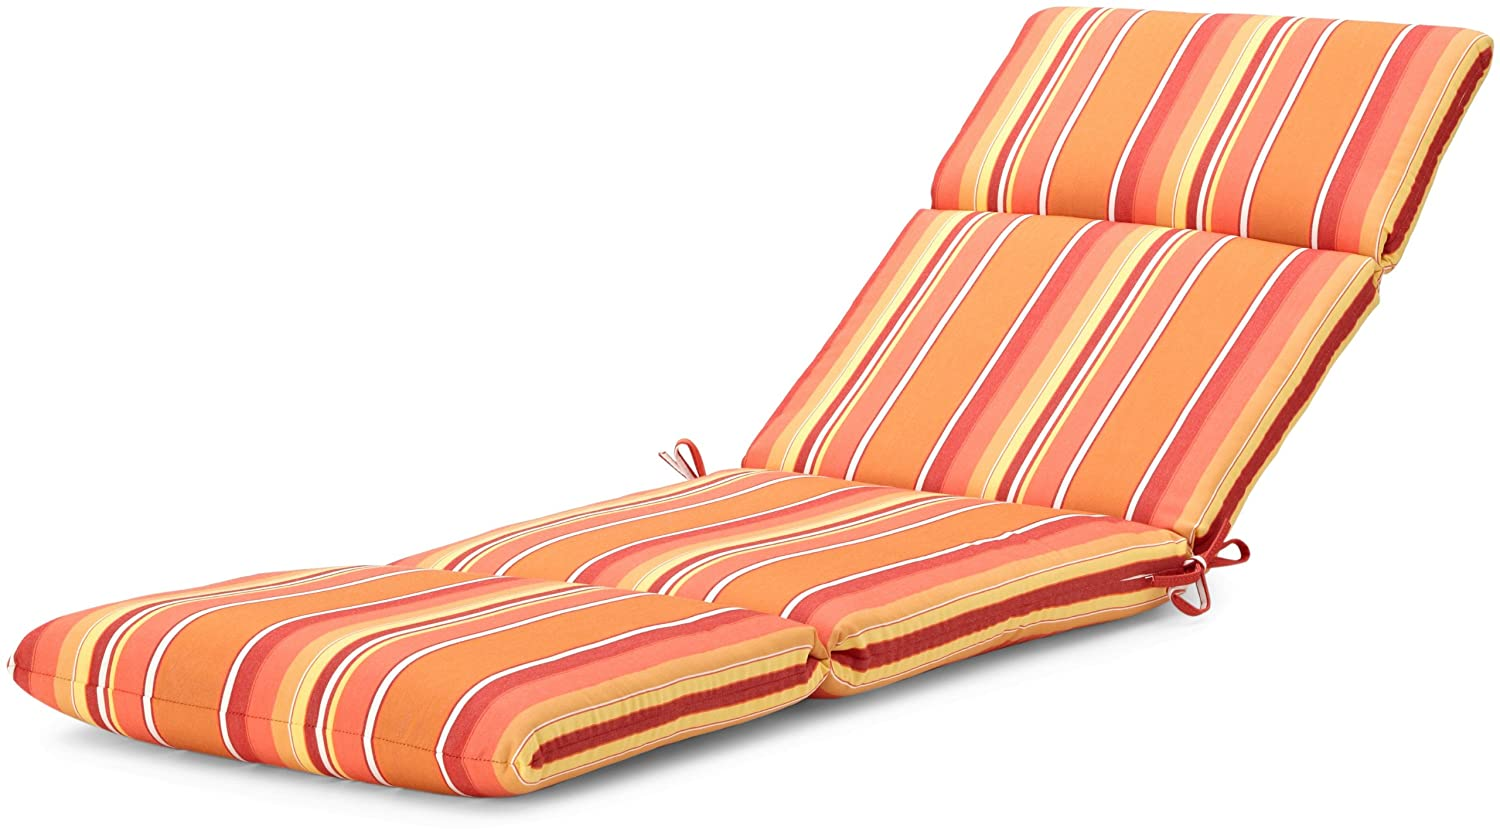 Best strathwood patio furniture replacement cushions with for Best chaise lounge cushions